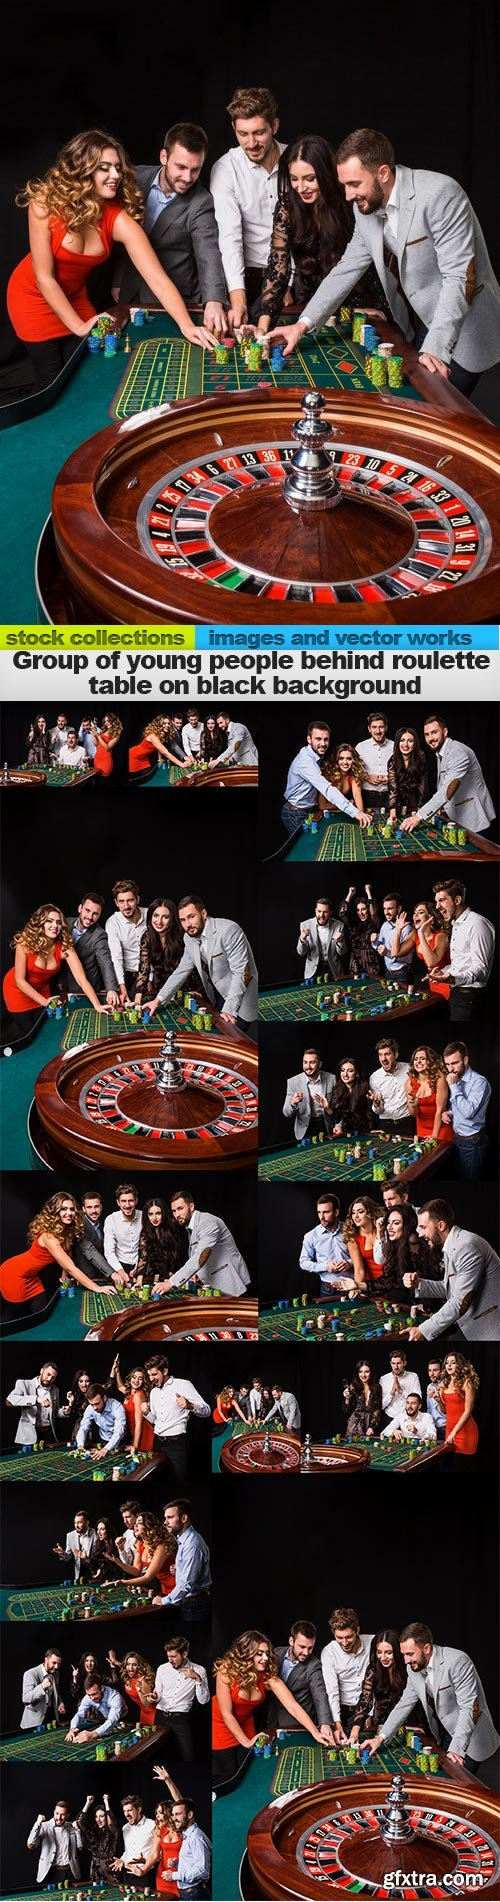 Group of young people behind roulette table on black background, 15 x UHQ JPEG